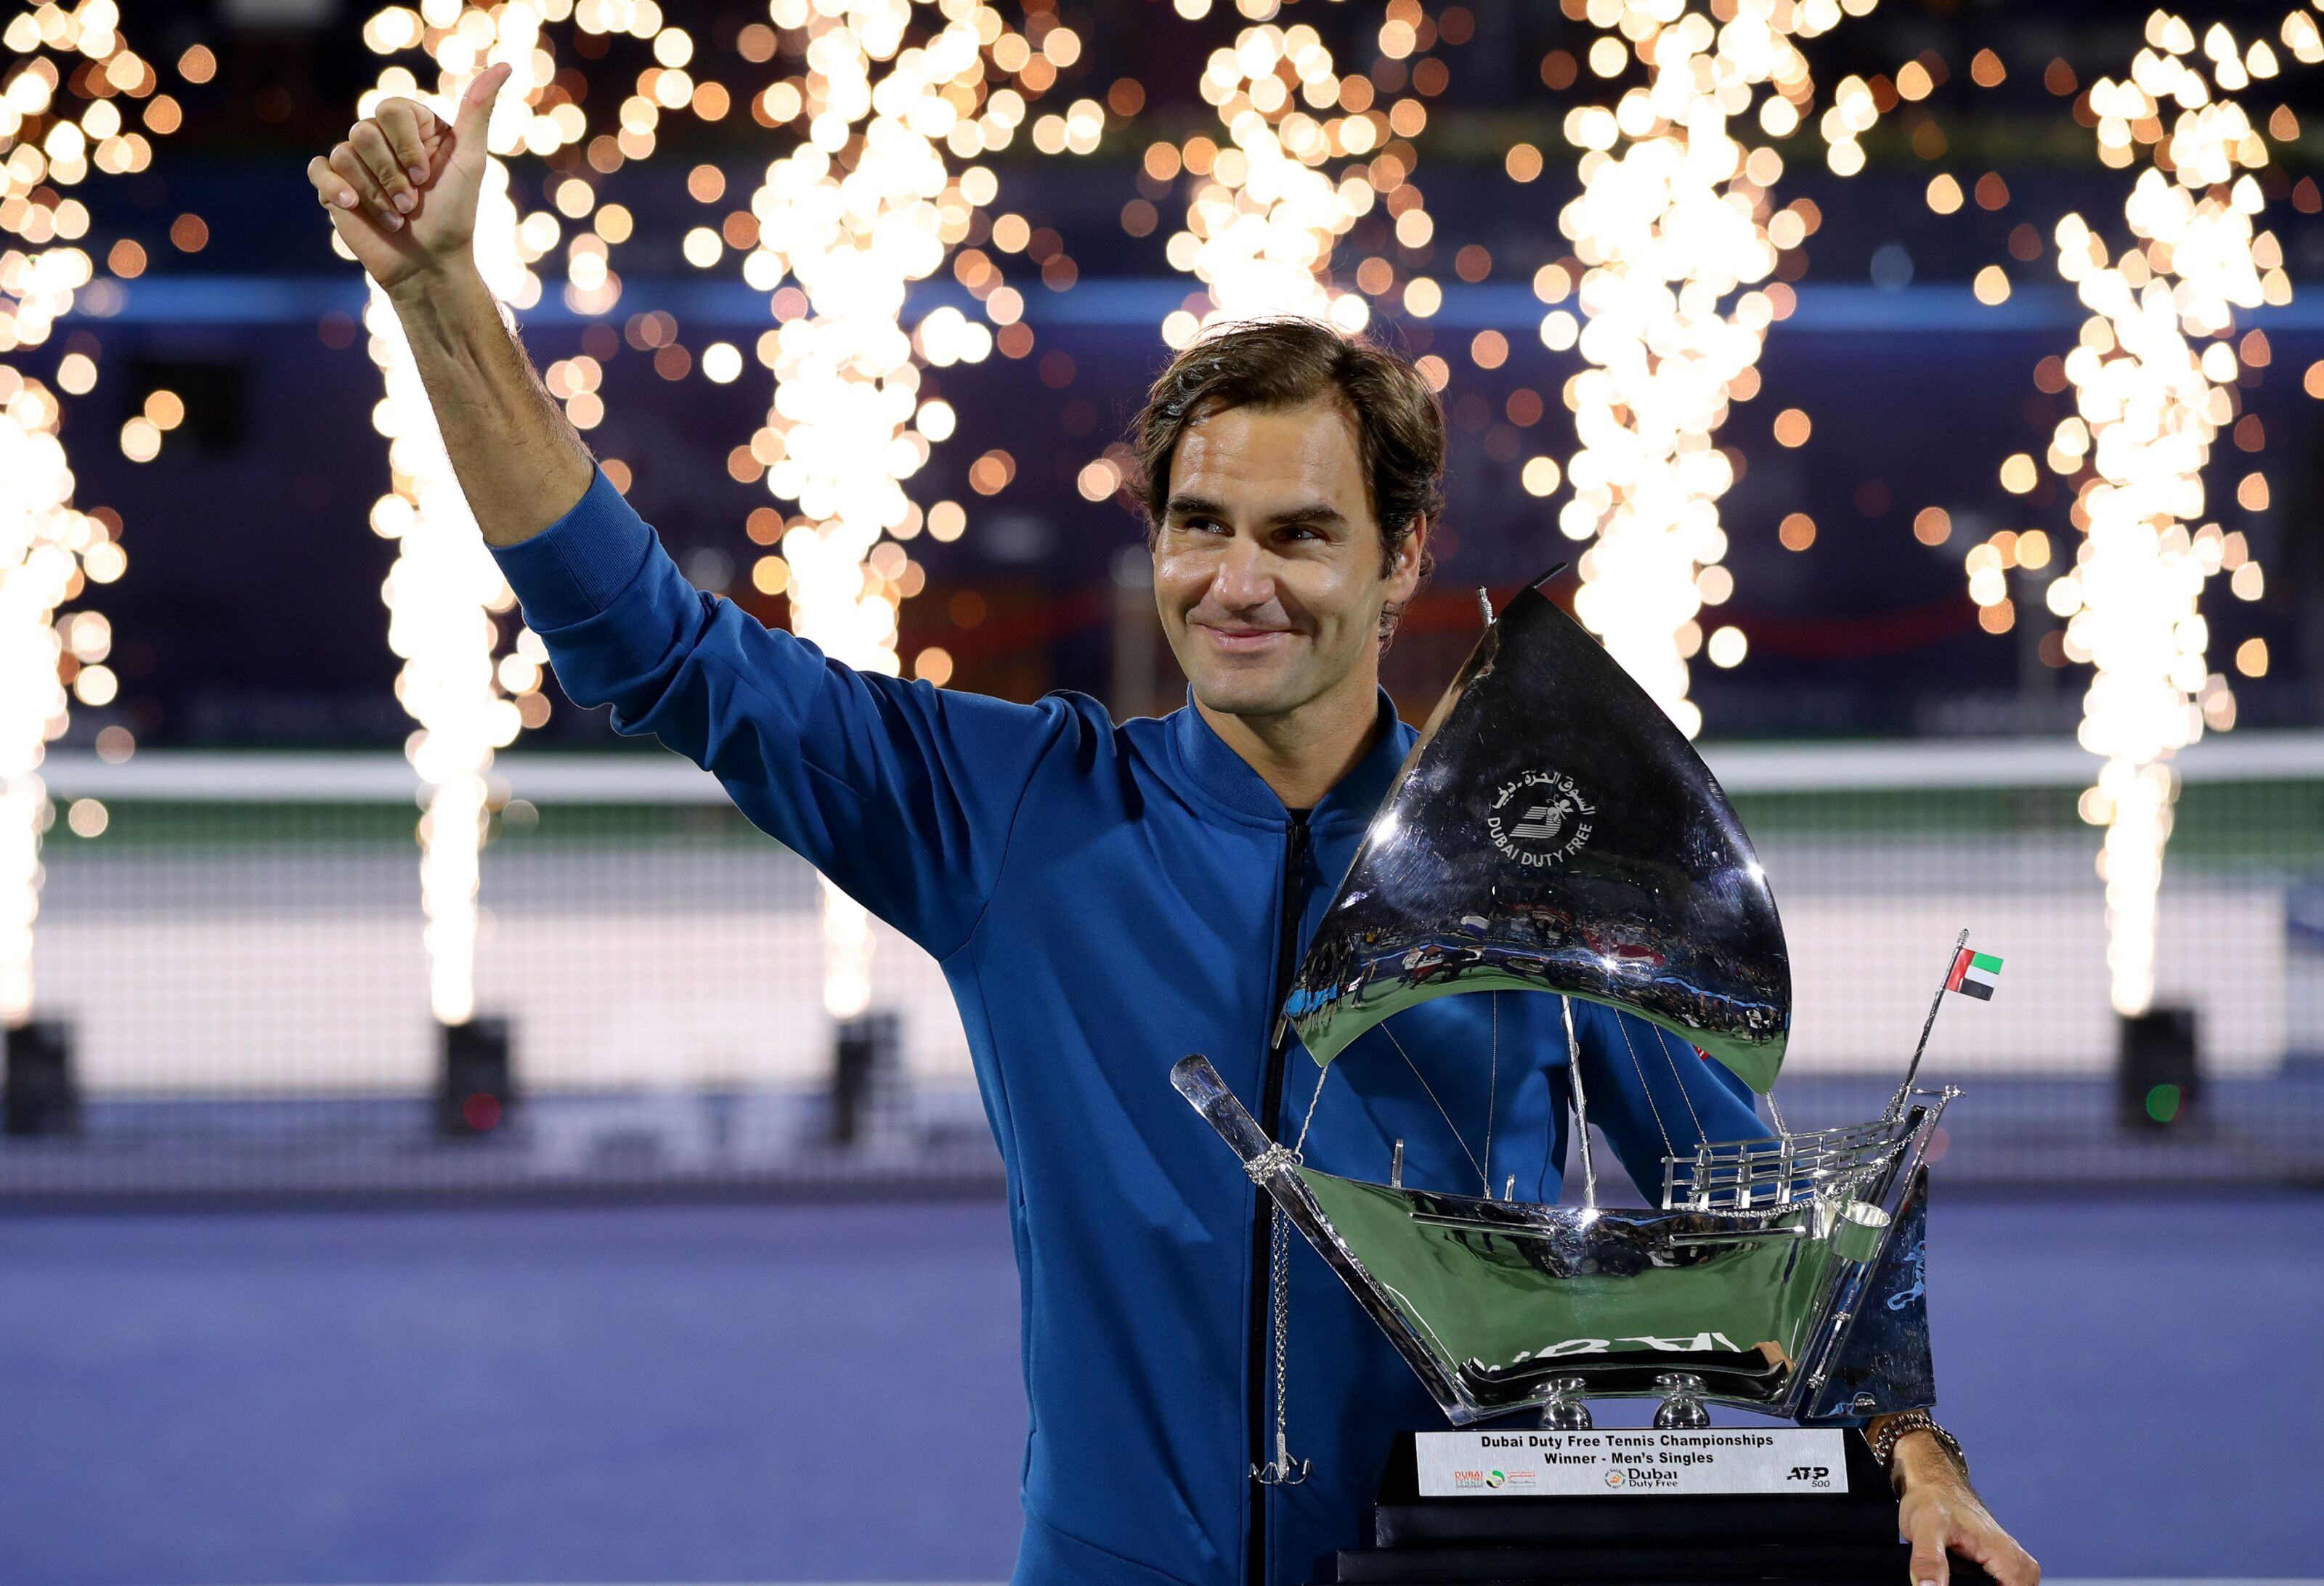 Count em up and watch Roger Federer win all 100 titles